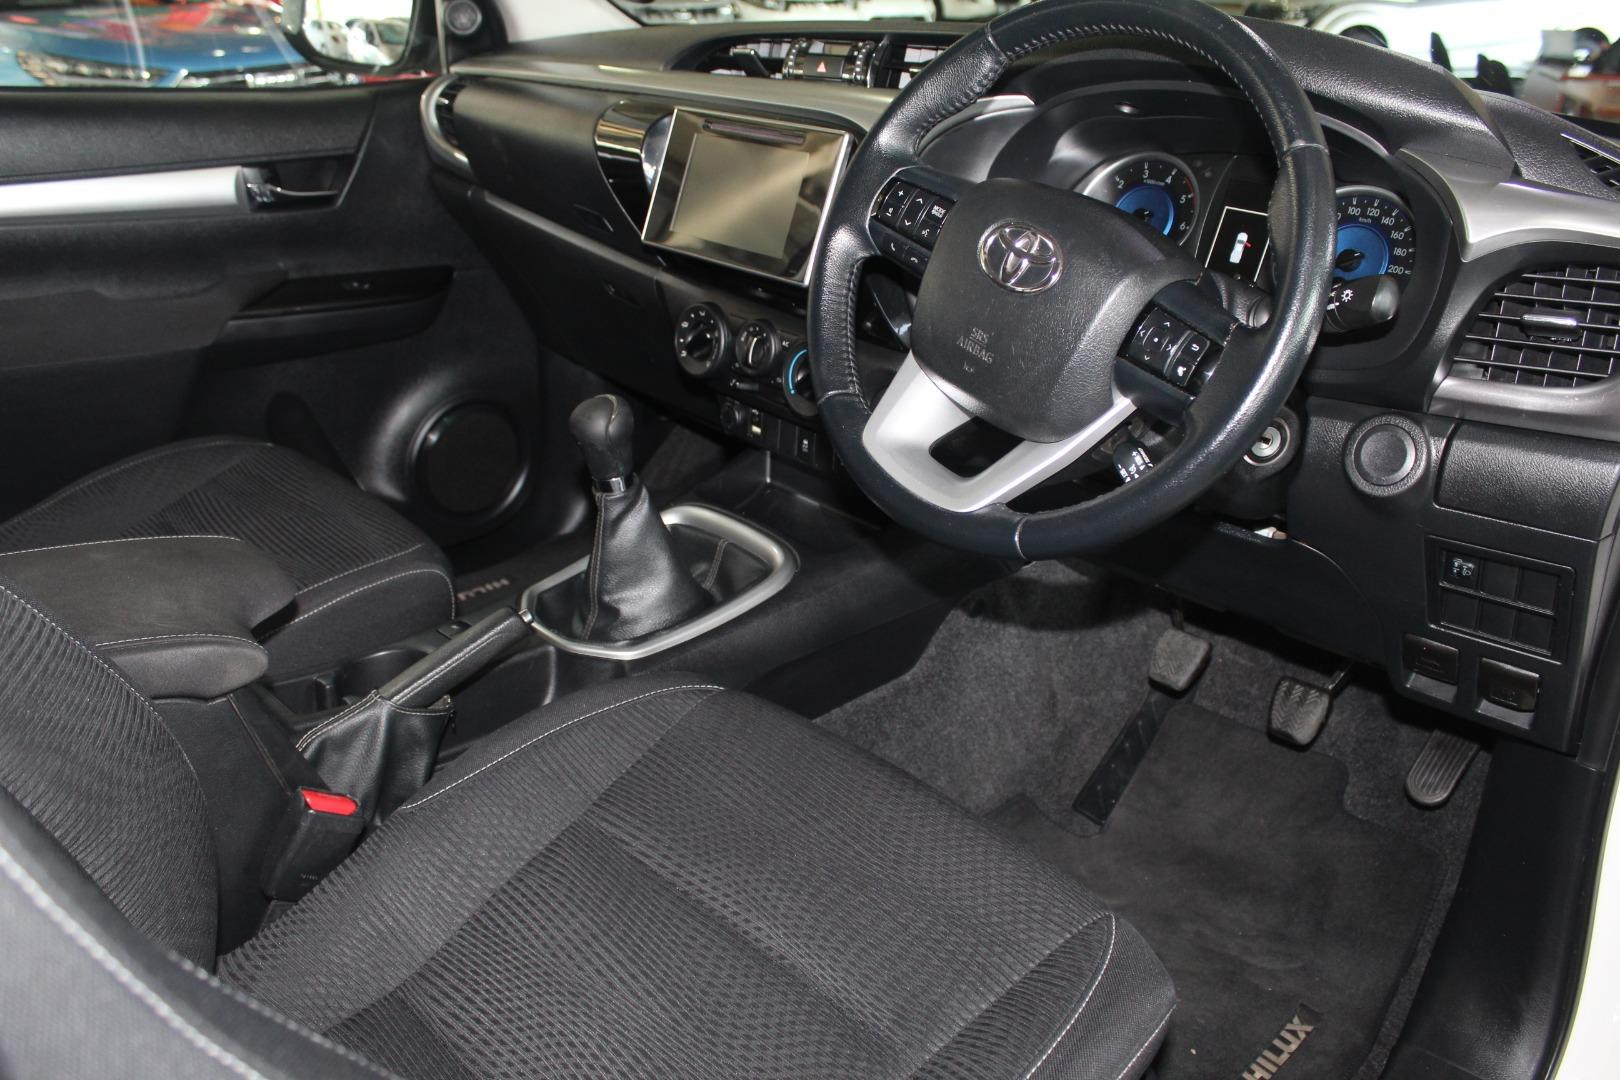 2017 Toyota Hilux 2.8GD-6 Xtra cab Raider- Picture 5